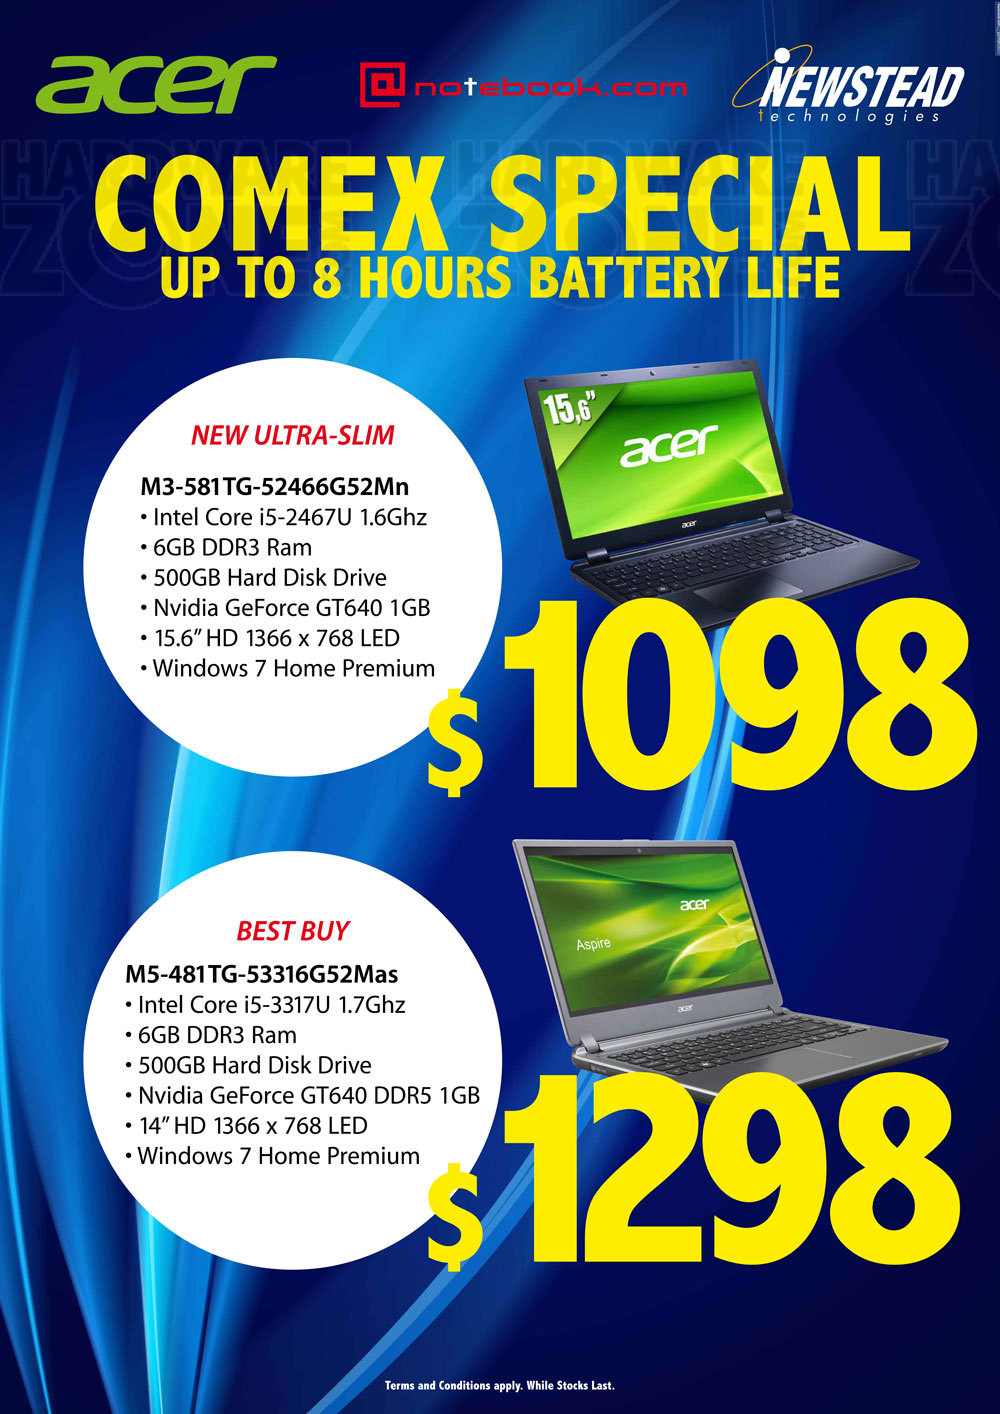 Newstead Acer Notebooks - Page 9